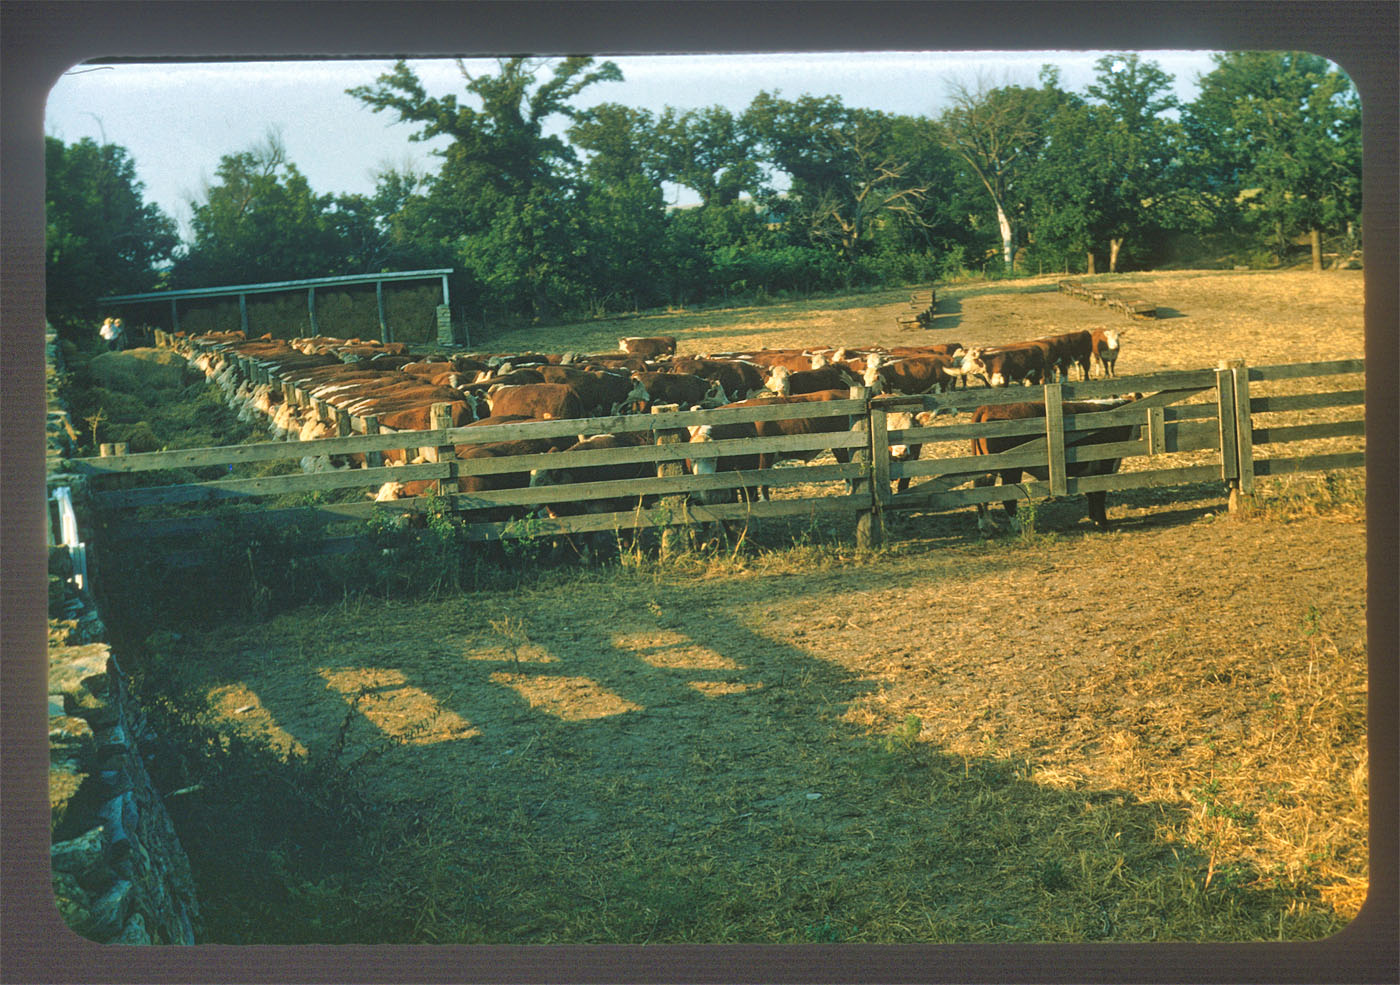 Cattle with stock shed in background